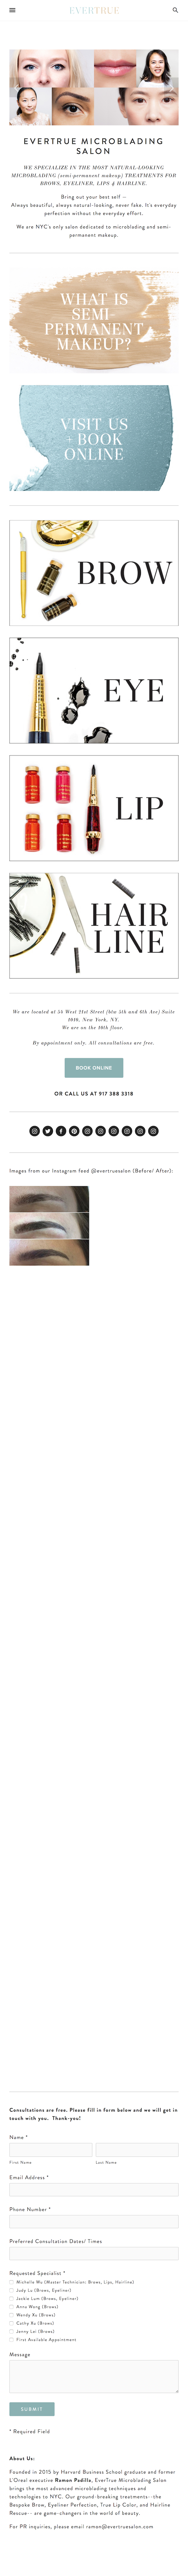 Our salon specializes in the most natural-looking semi- permanent makeup  treatments for brow, eyeliner, lip, and lash.